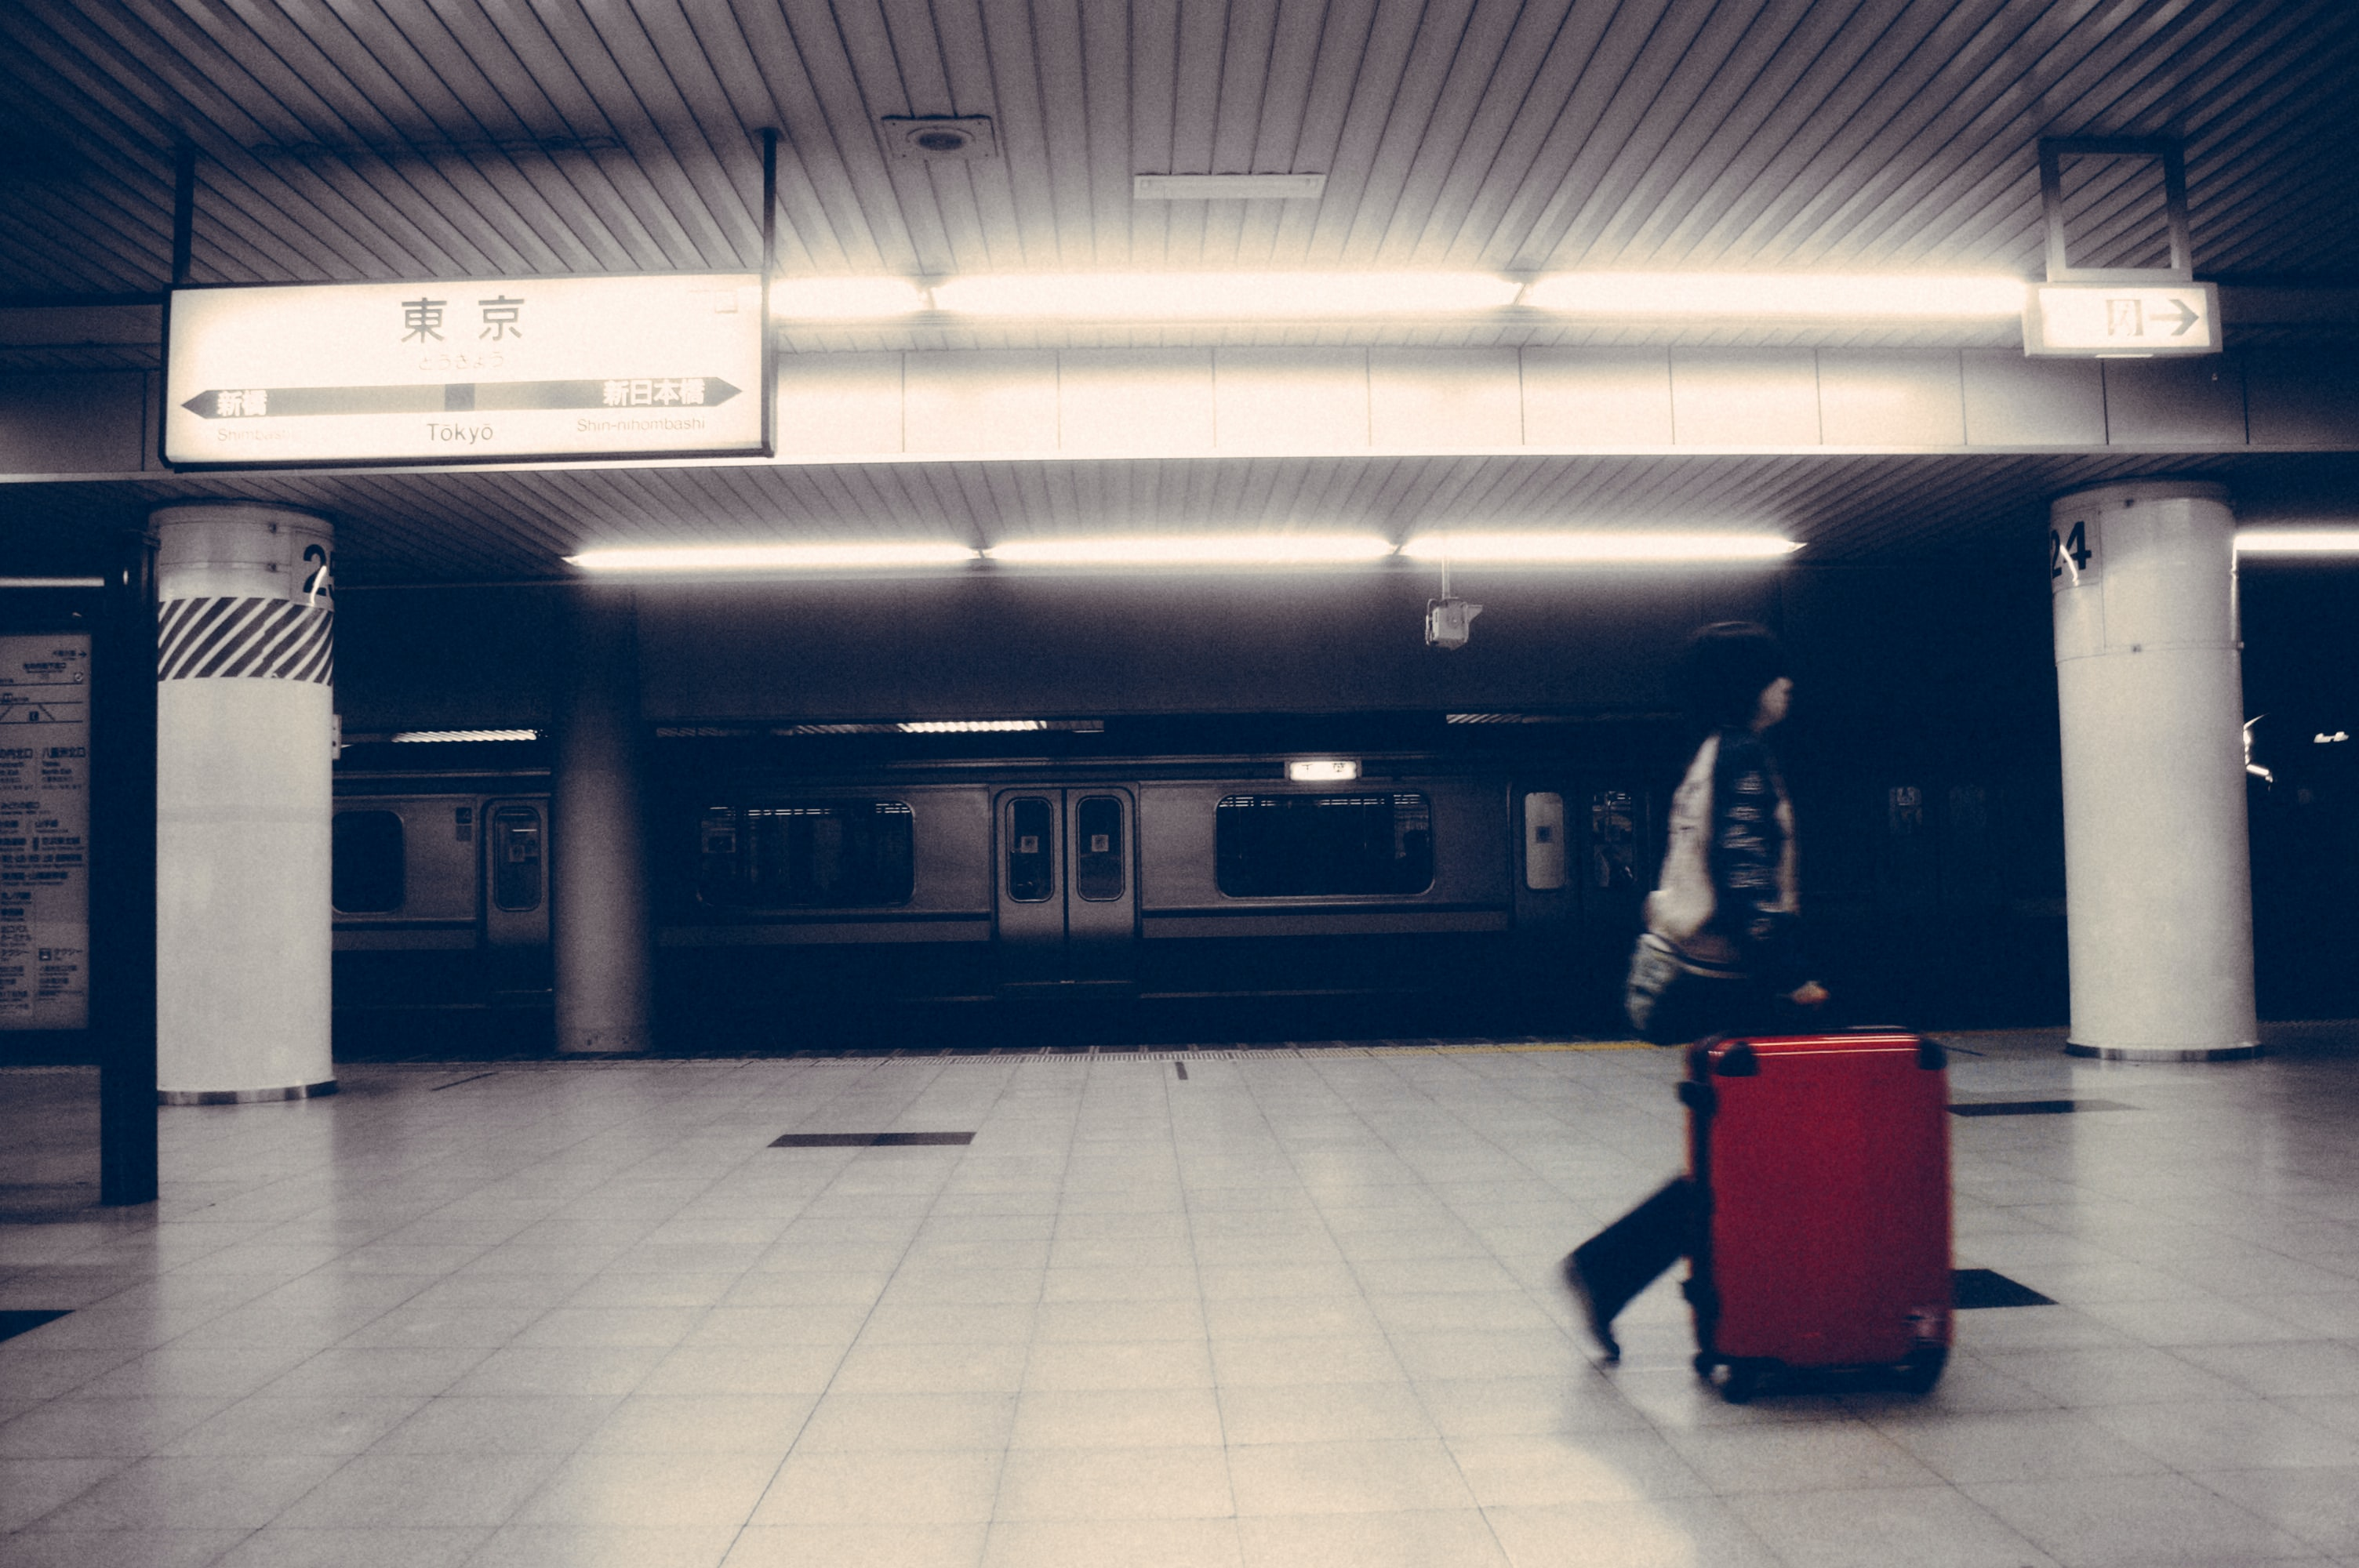 Person with red suitcase walks past a subway car in an underground station